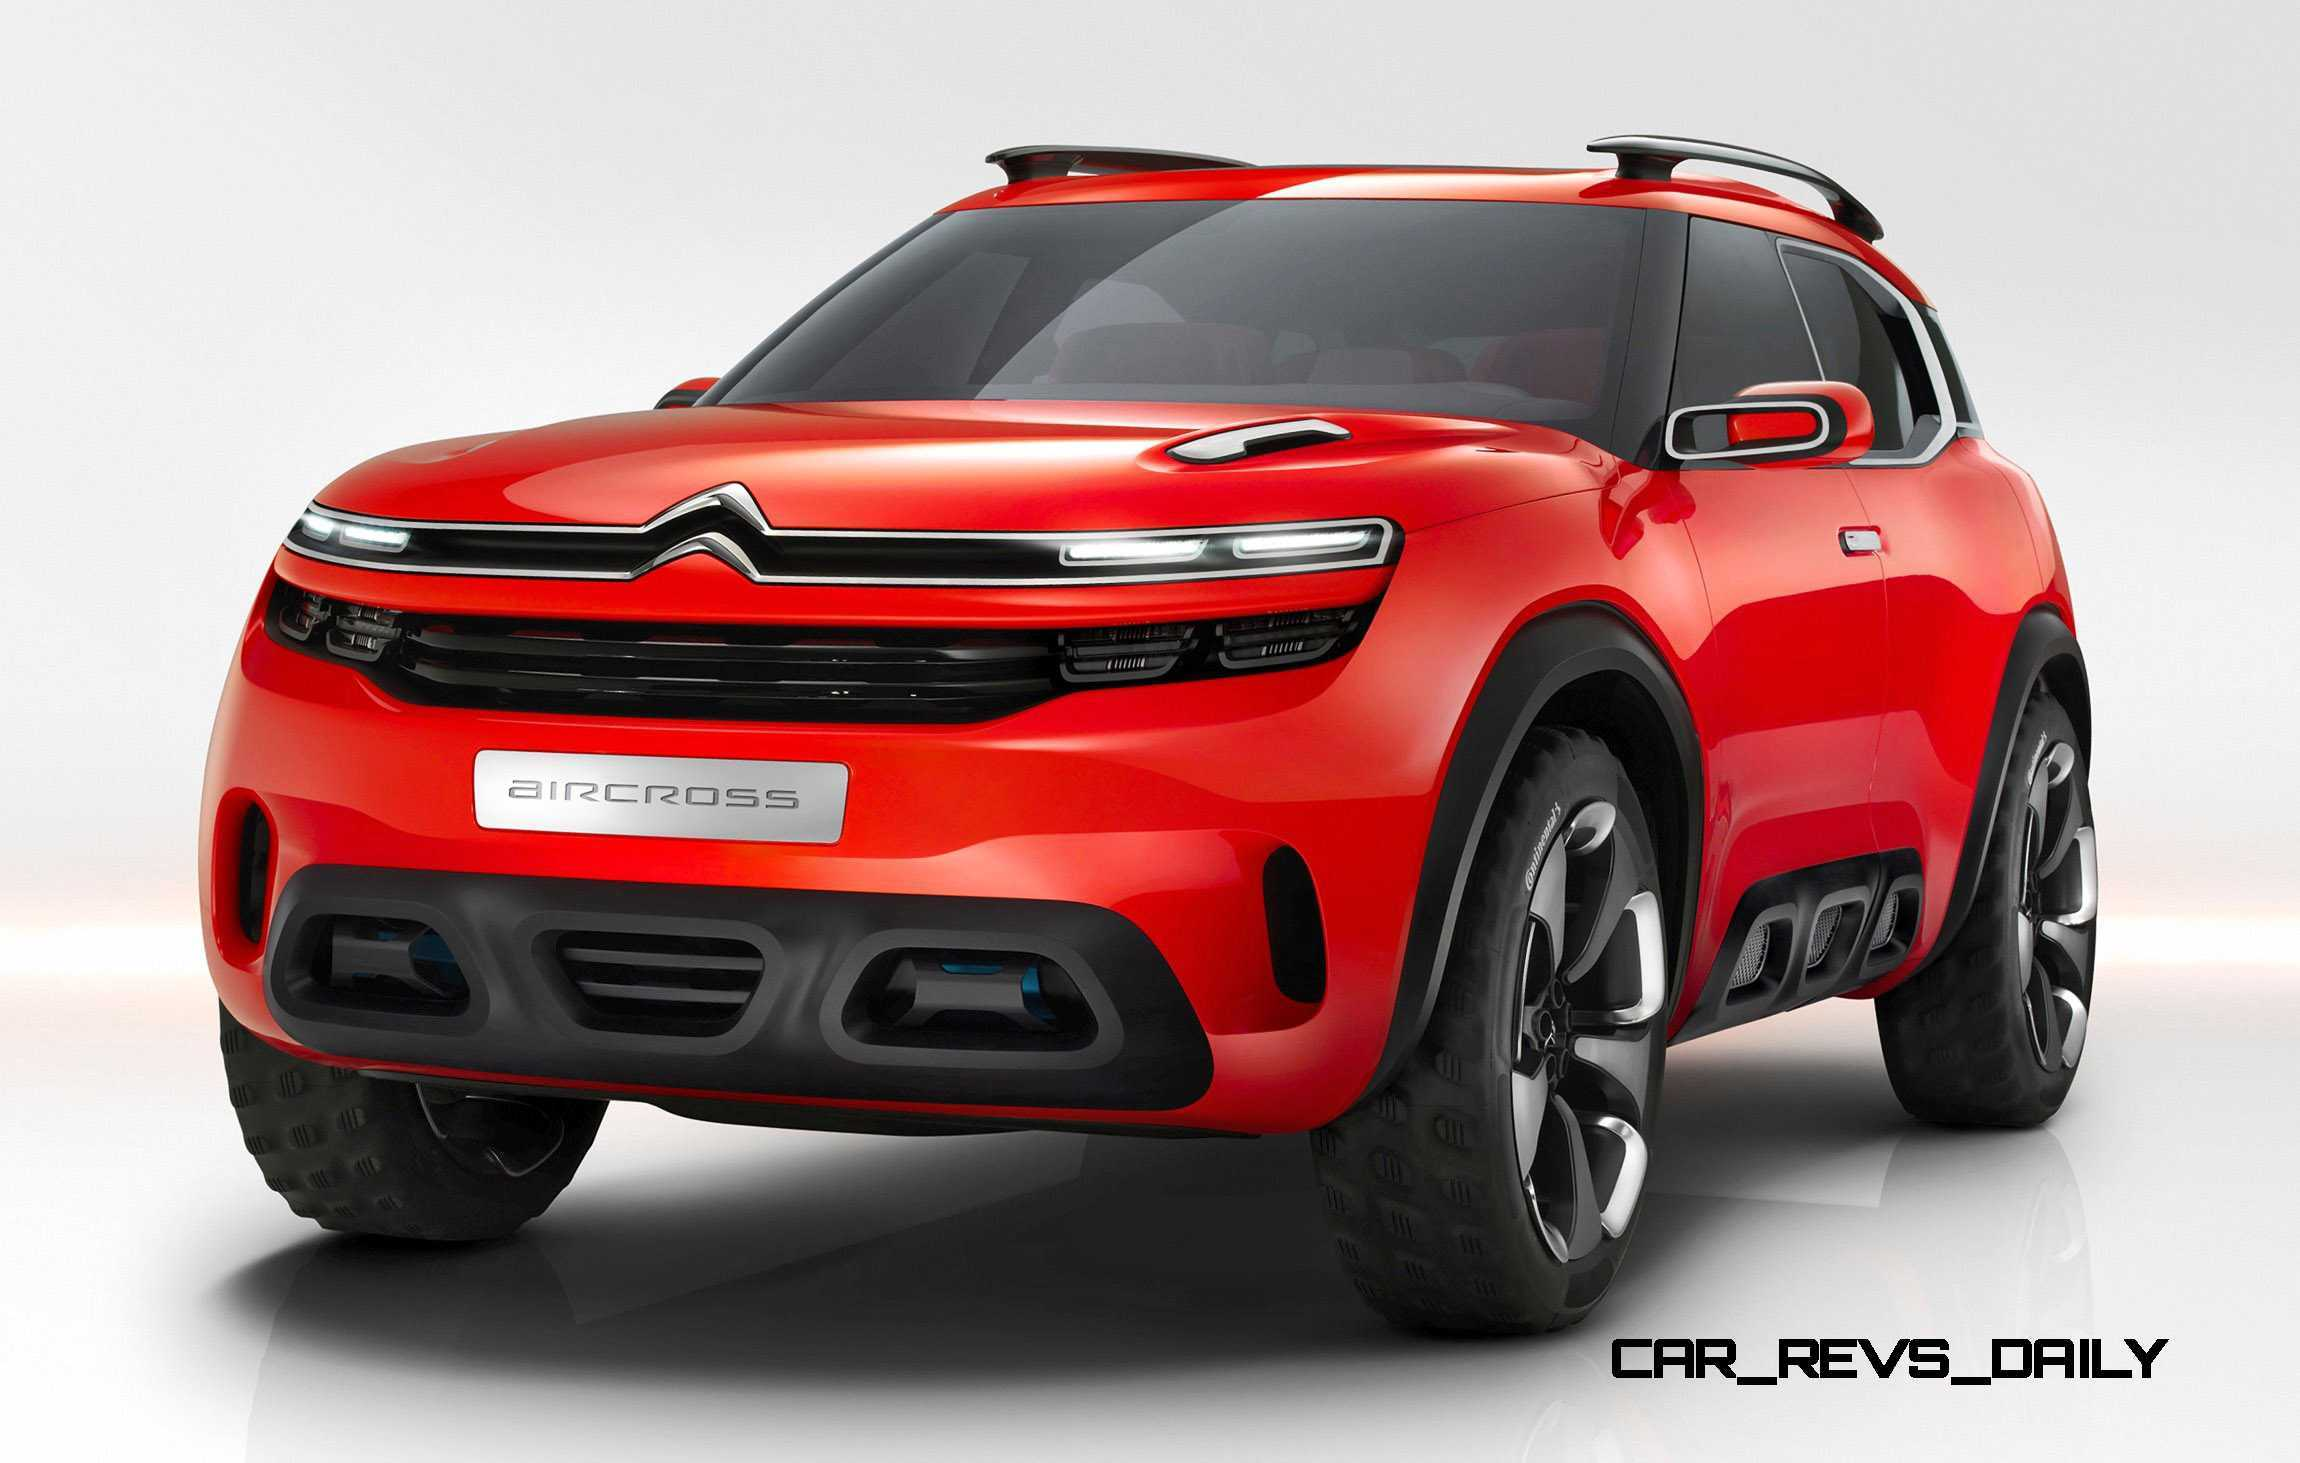 2015 citroen aircross concept 8. Black Bedroom Furniture Sets. Home Design Ideas